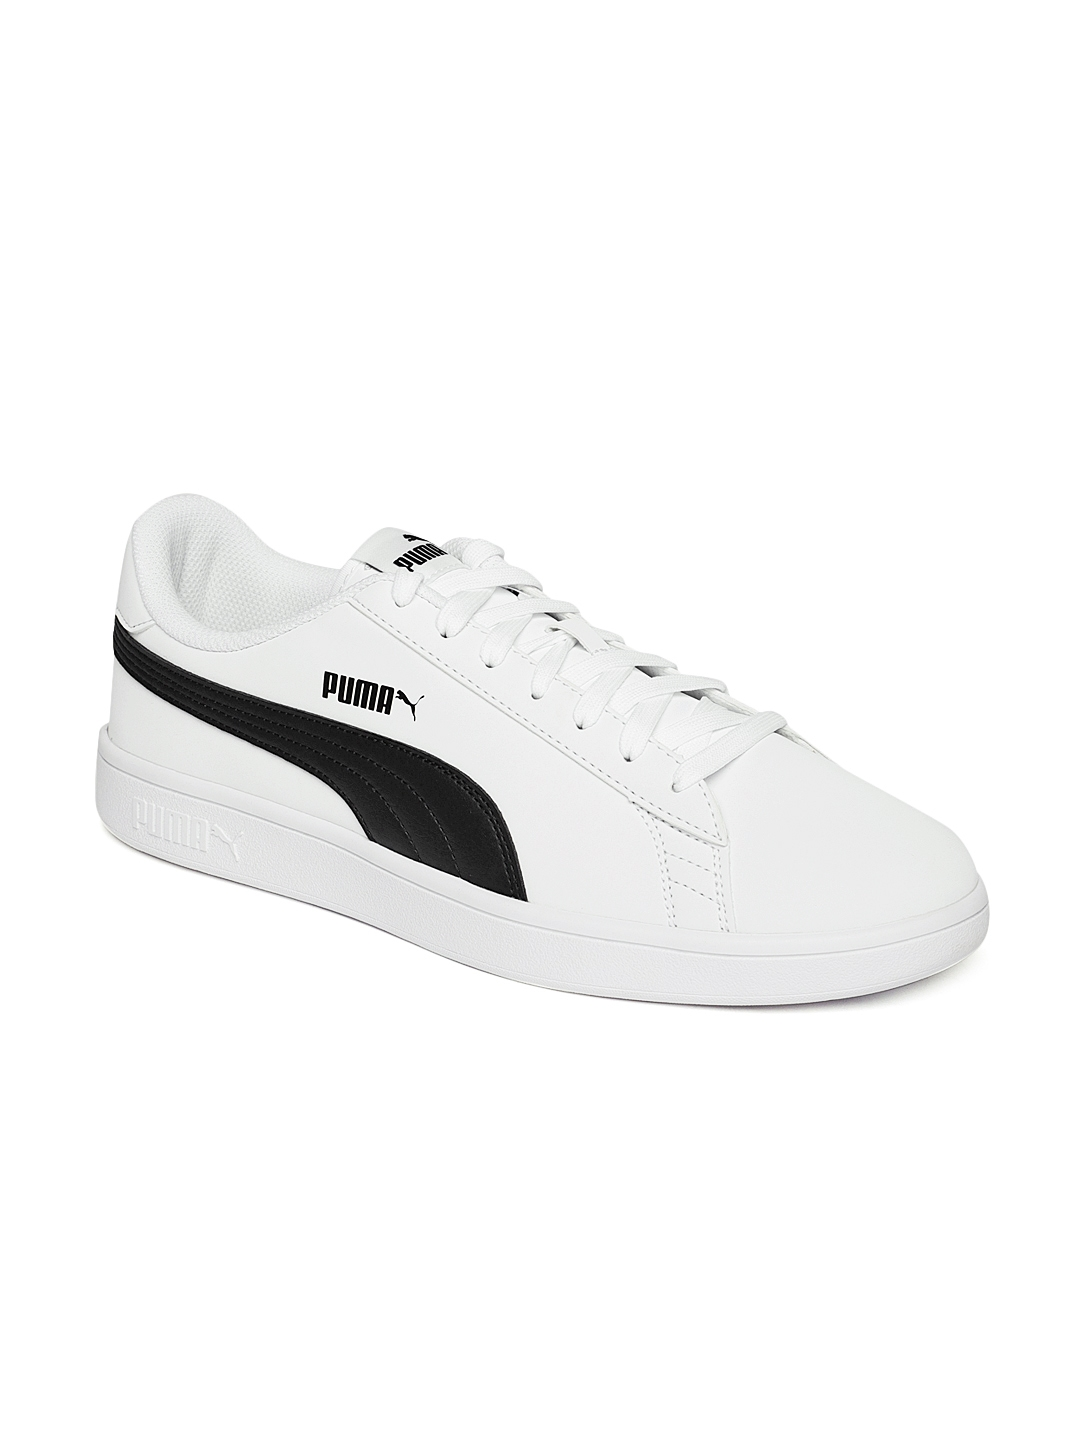 Buy Puma Unisex White Smash V2 Buck Sneakers - Casual Shoes for ... 02f8e5164